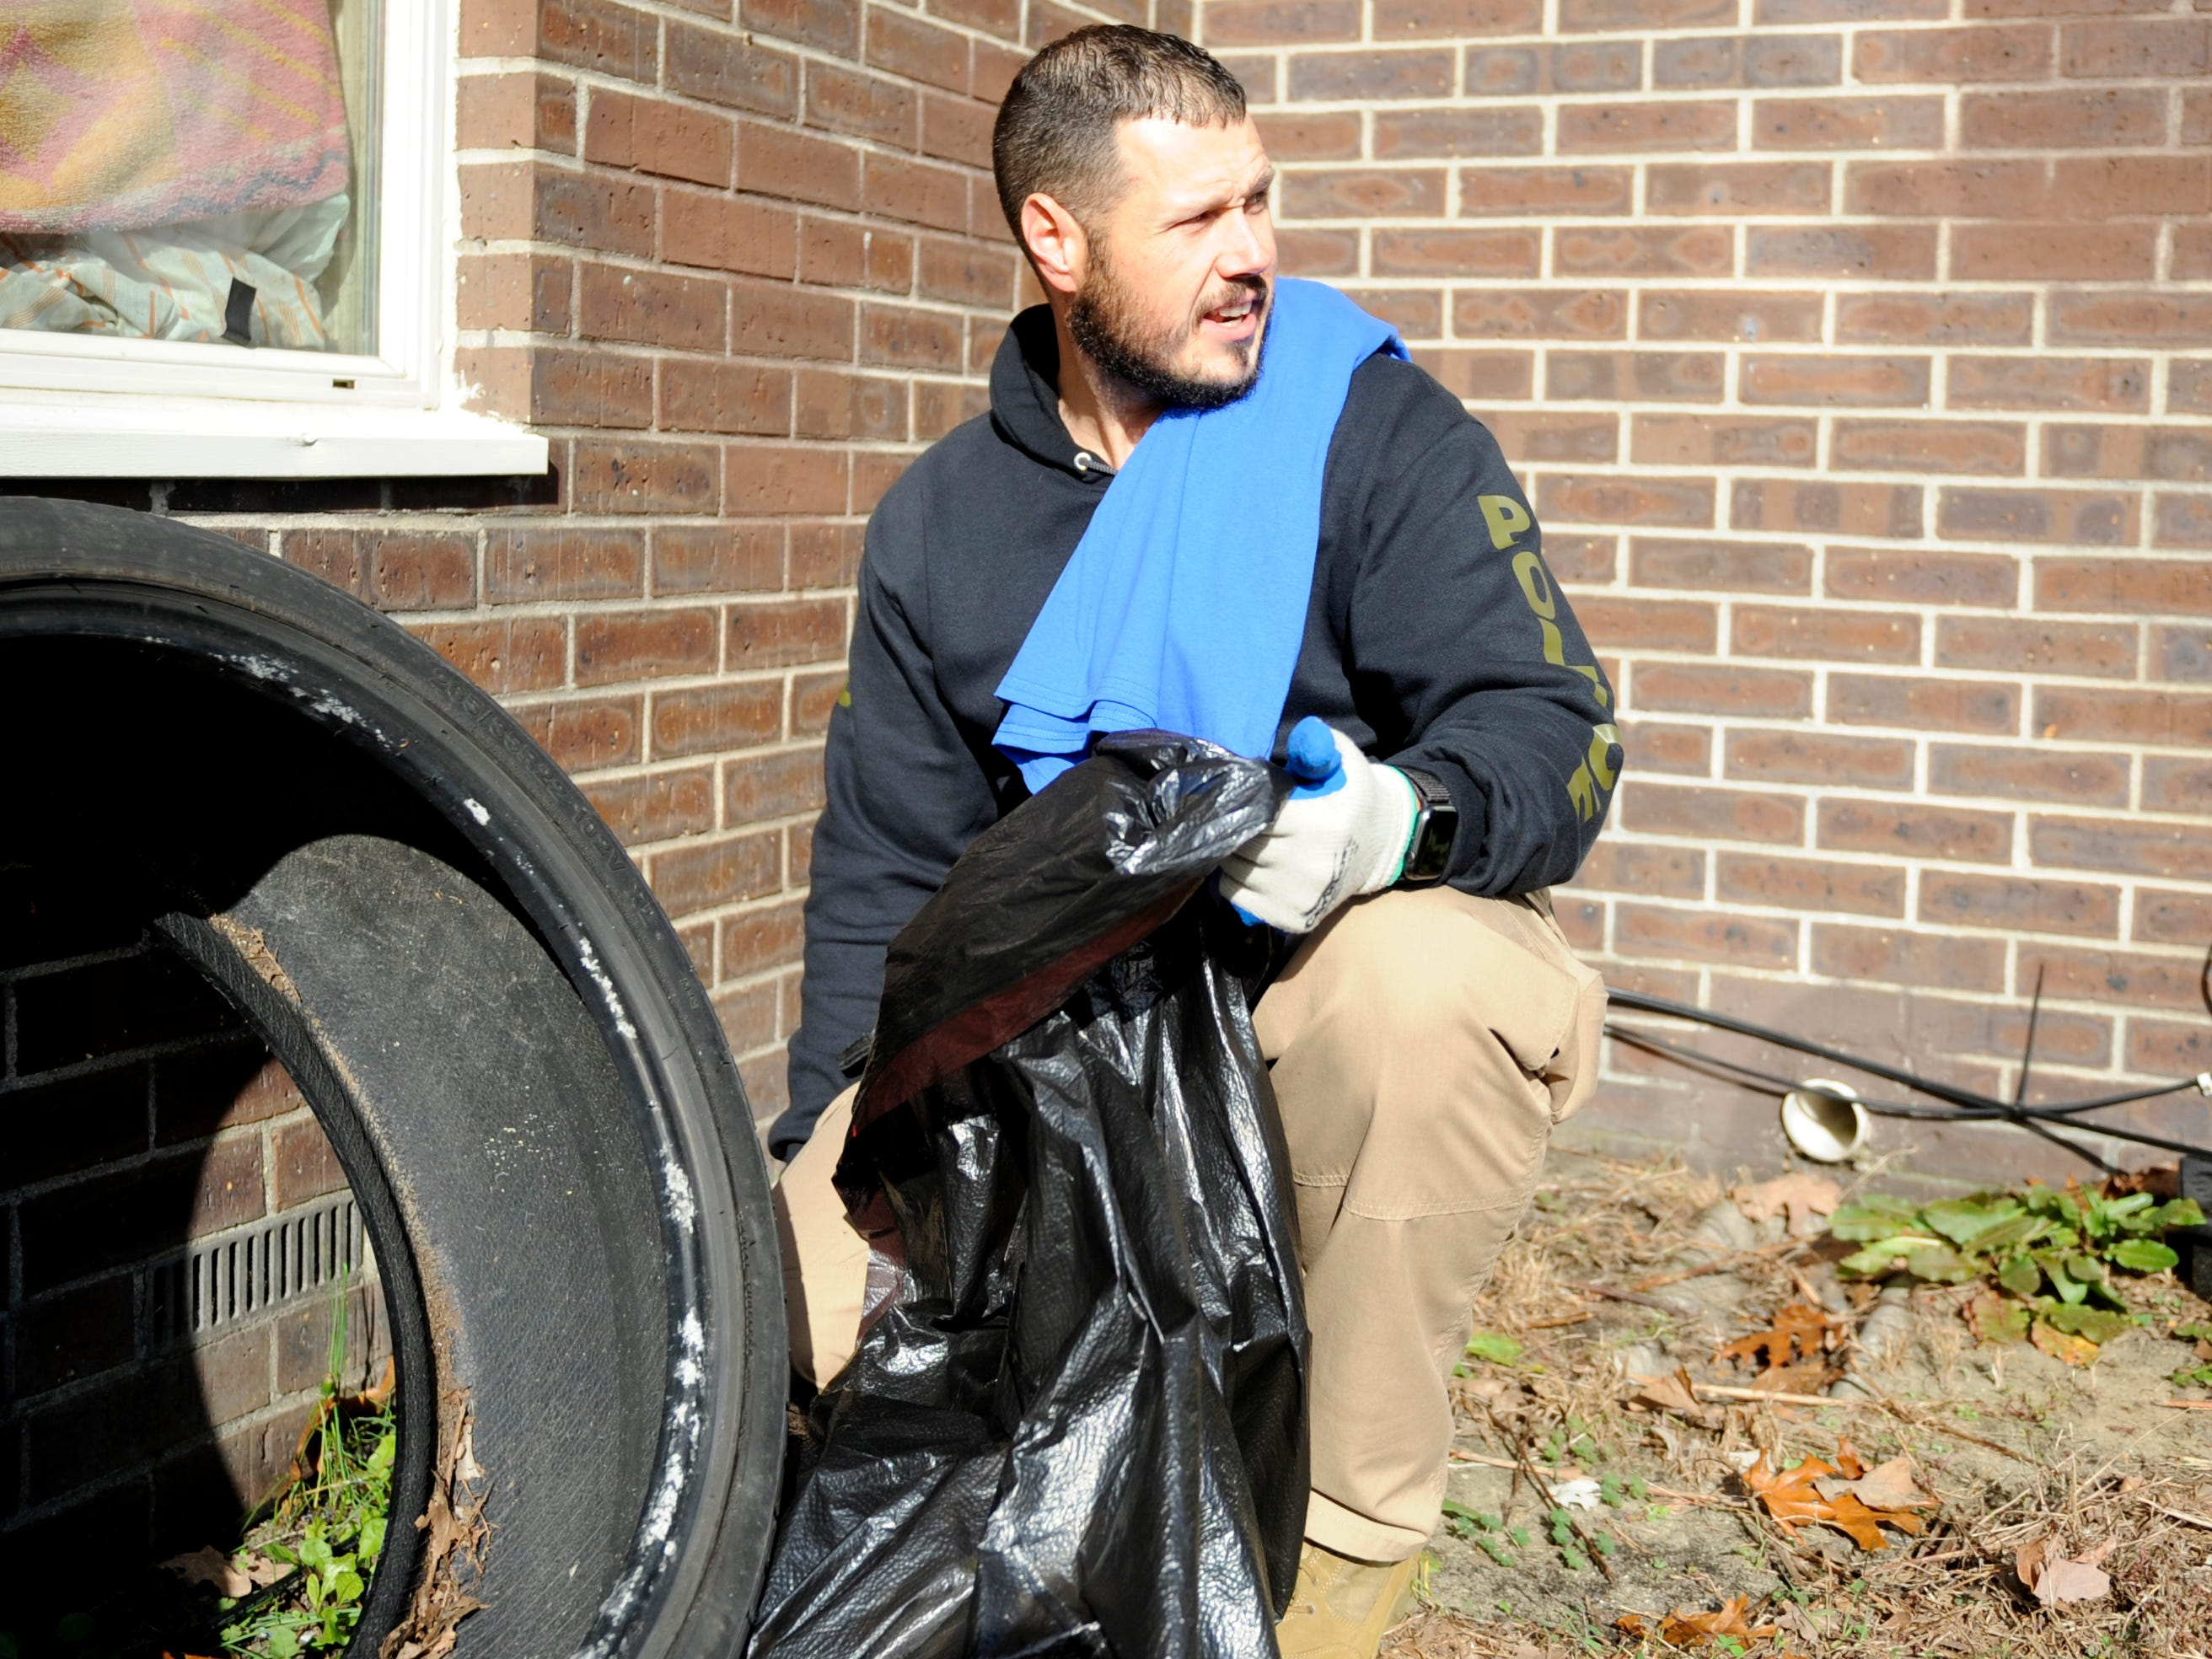 Member of the Millville police department participated in a community clean up event at Oakview Apartments on Thursday, November 8, 2018.